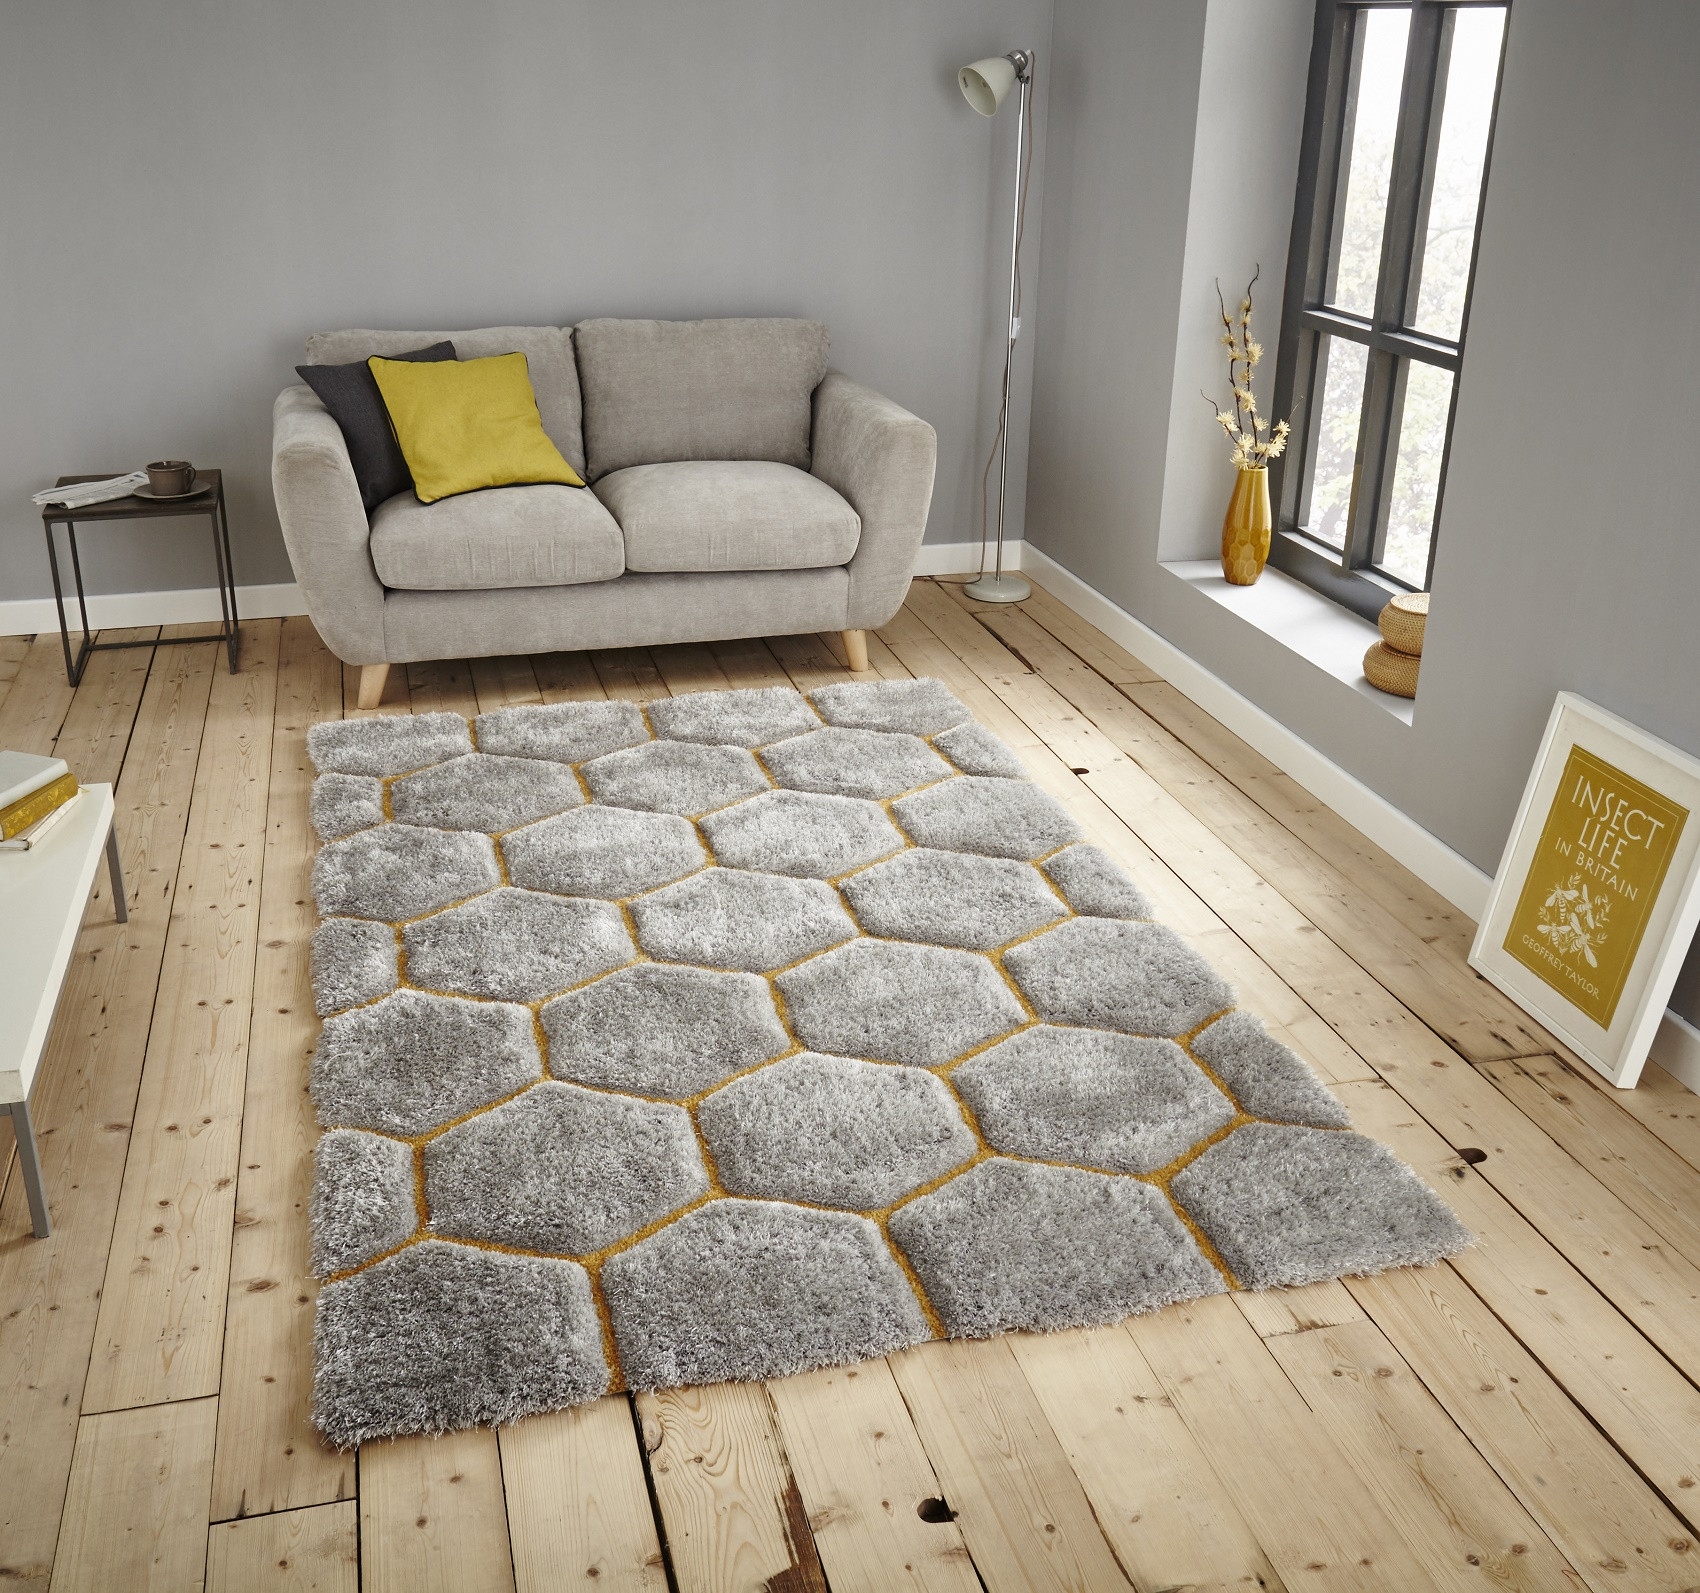 Grey rugs think rugs noble house nh30782 rugs grey/yellow GCYDZFN